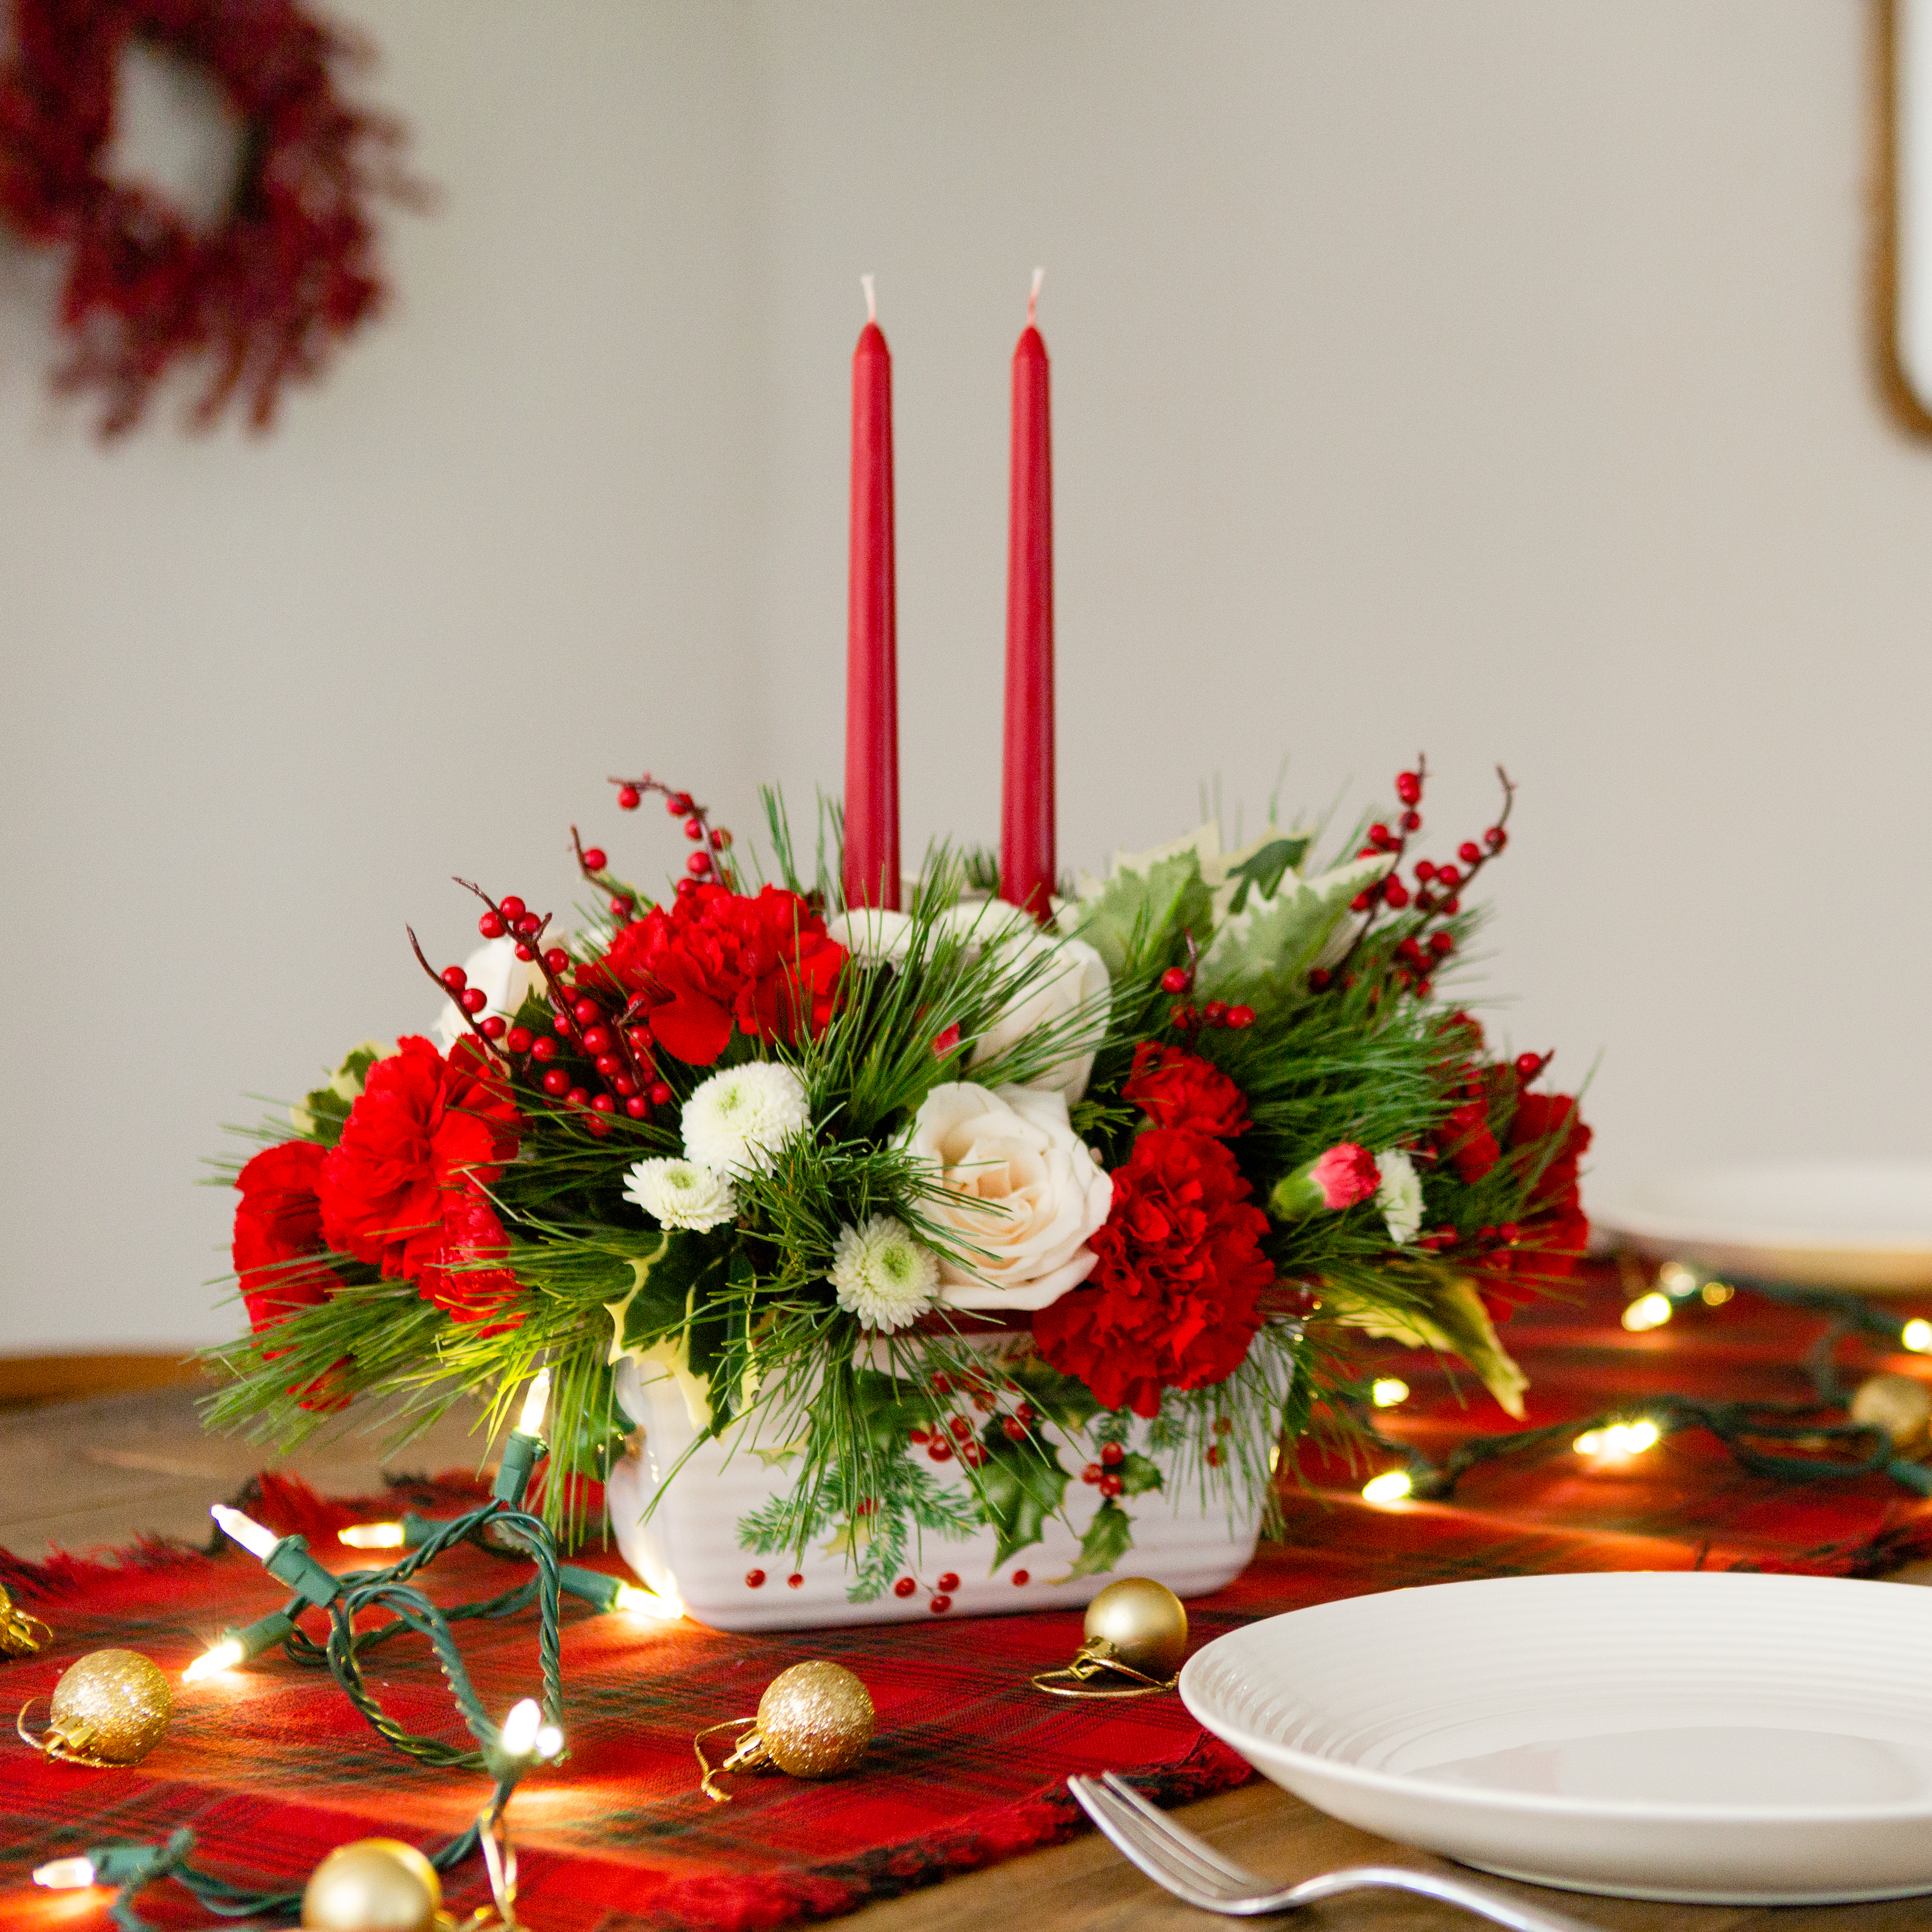 Red carnations and white roses accented with greenery fill a ceramic dish with holly accents